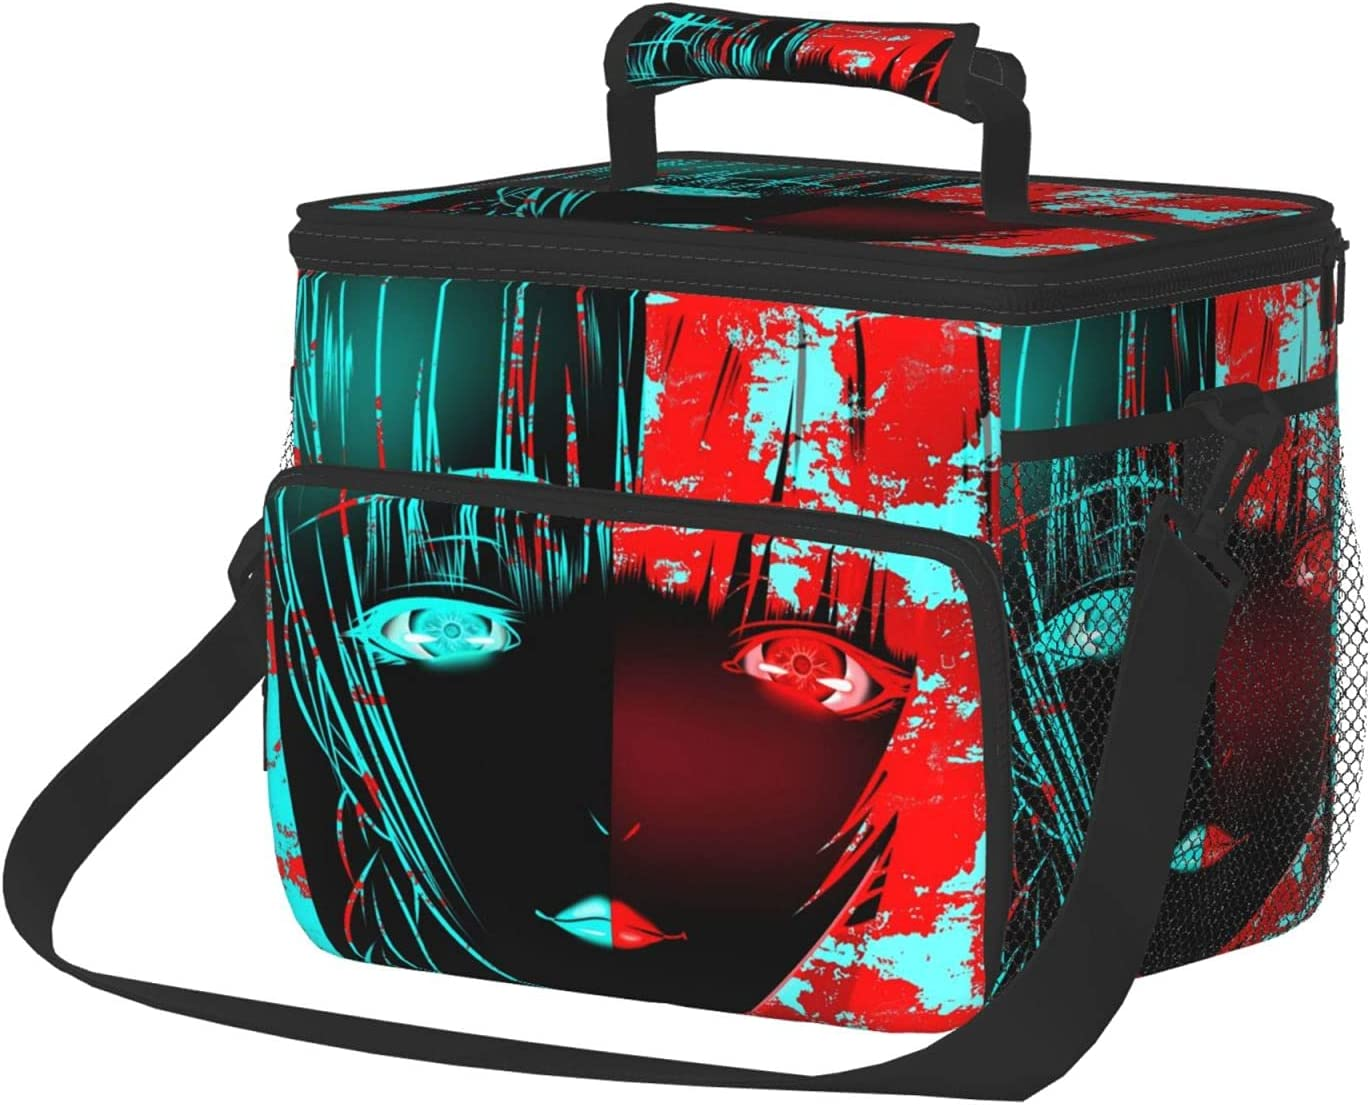 Anime Kakegurui Lunch Bag Reusable Is Tote Luxury SEAL limited product Box